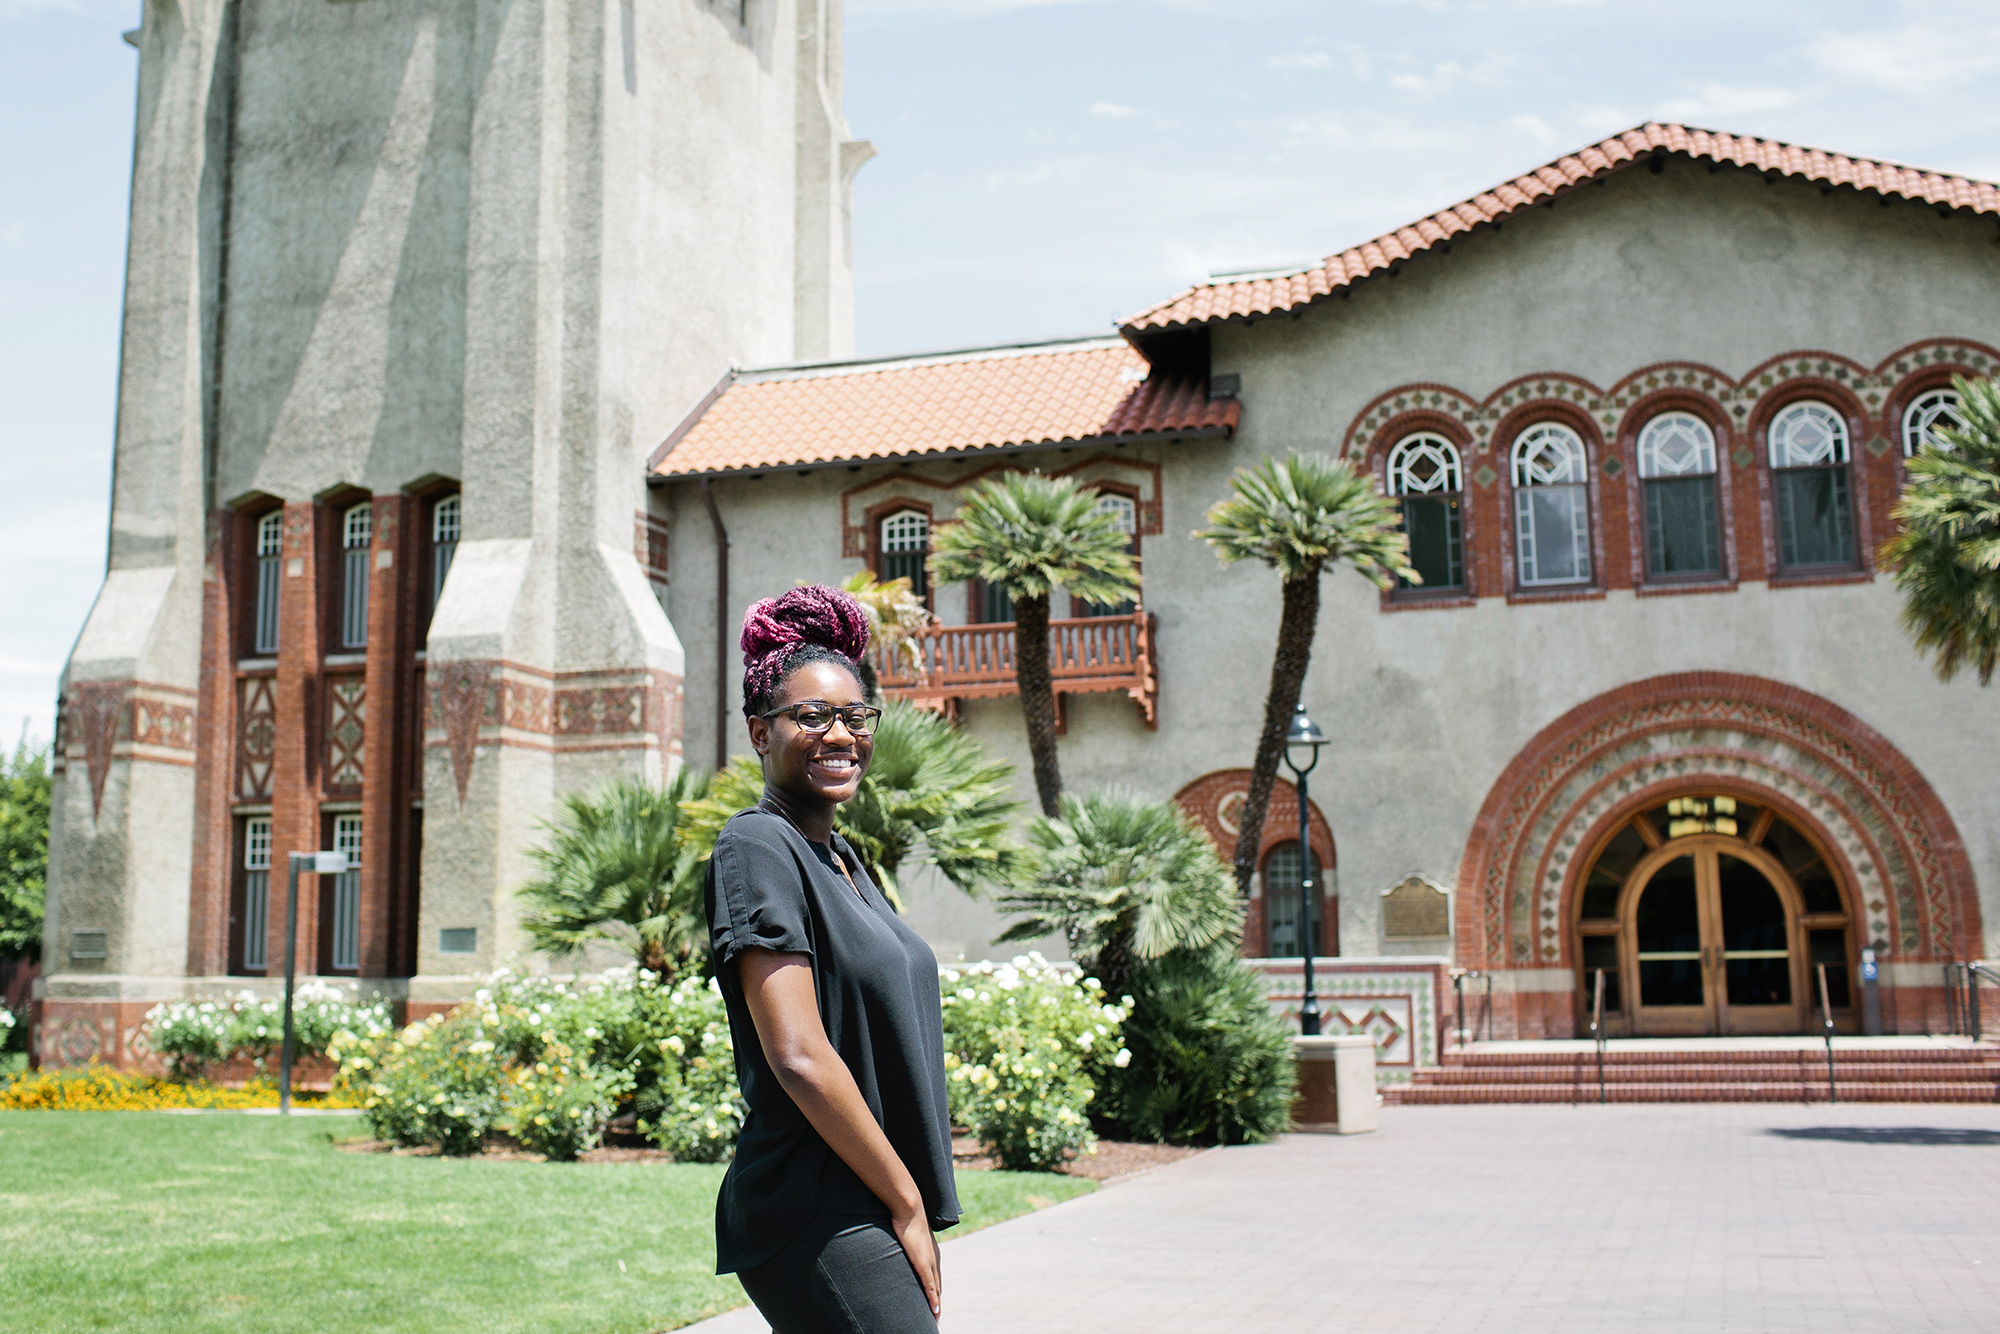 San Jose State University senior Jaelyn Deas, 22, is a recipient of the Spartan Completion Grant and plans to graduate in December in San Jose, Calif., Thursday, July 25, 2019. When Deas discovered that the grant would cover her summer school registration fees she said it felt like Christmas morning. Photo by Alison Yin for the Hechinger Report